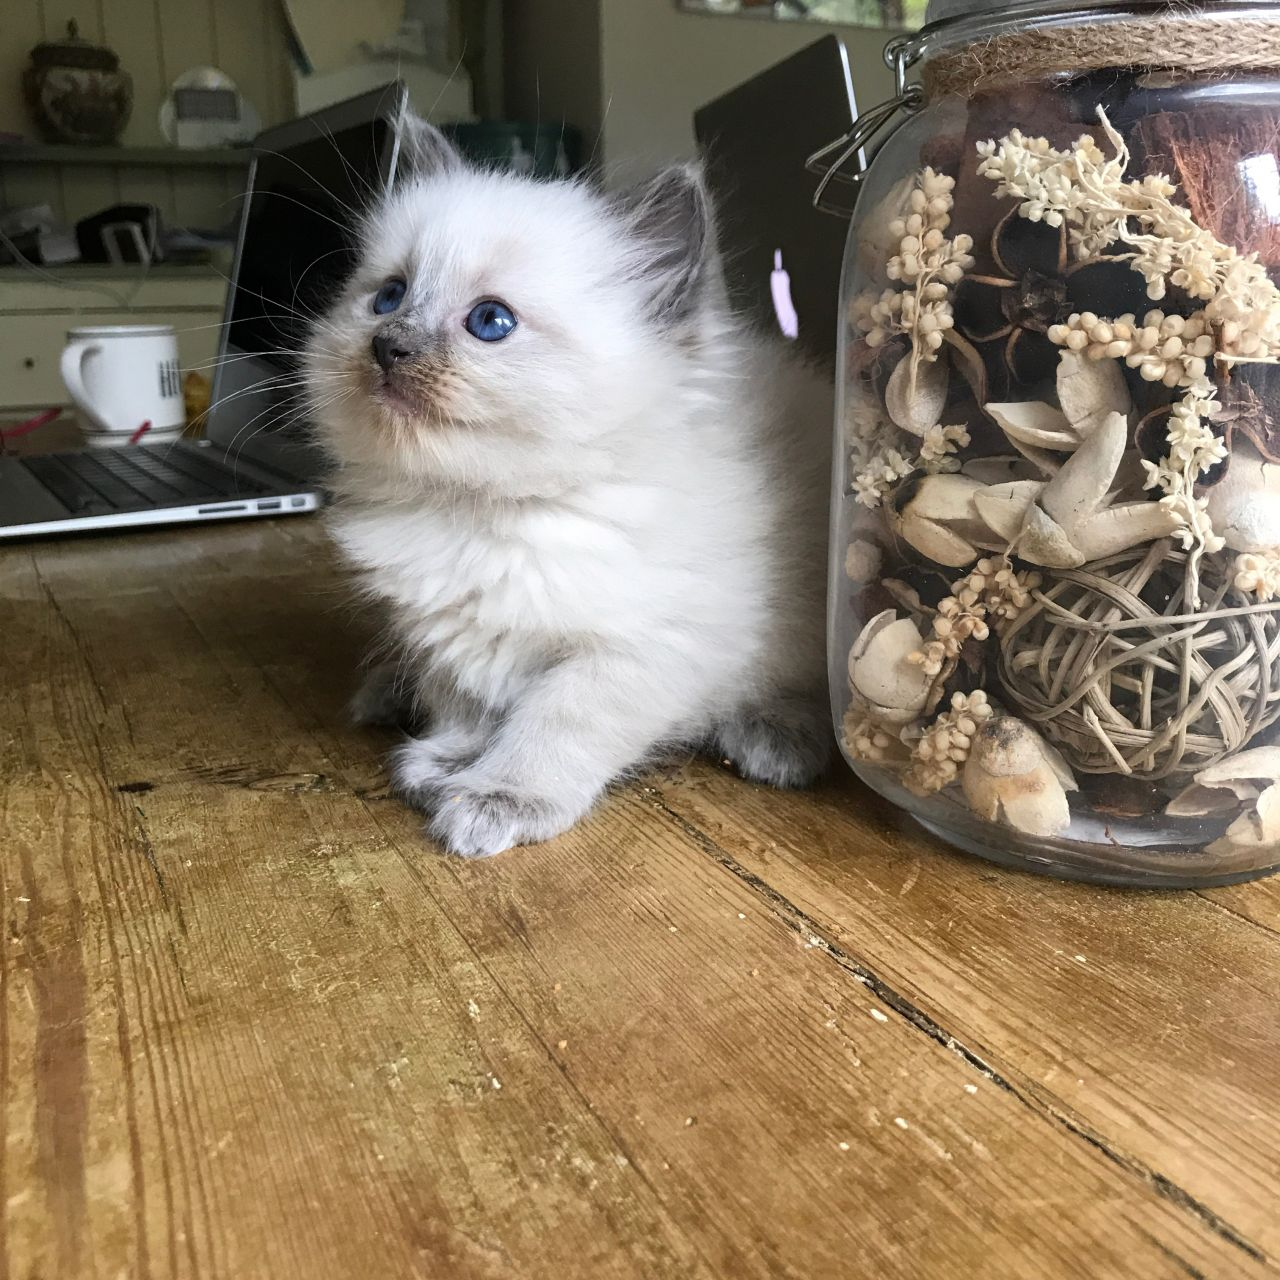 Kittens For Sale in Wyre Forest Shropshire Classifieds Free Ads